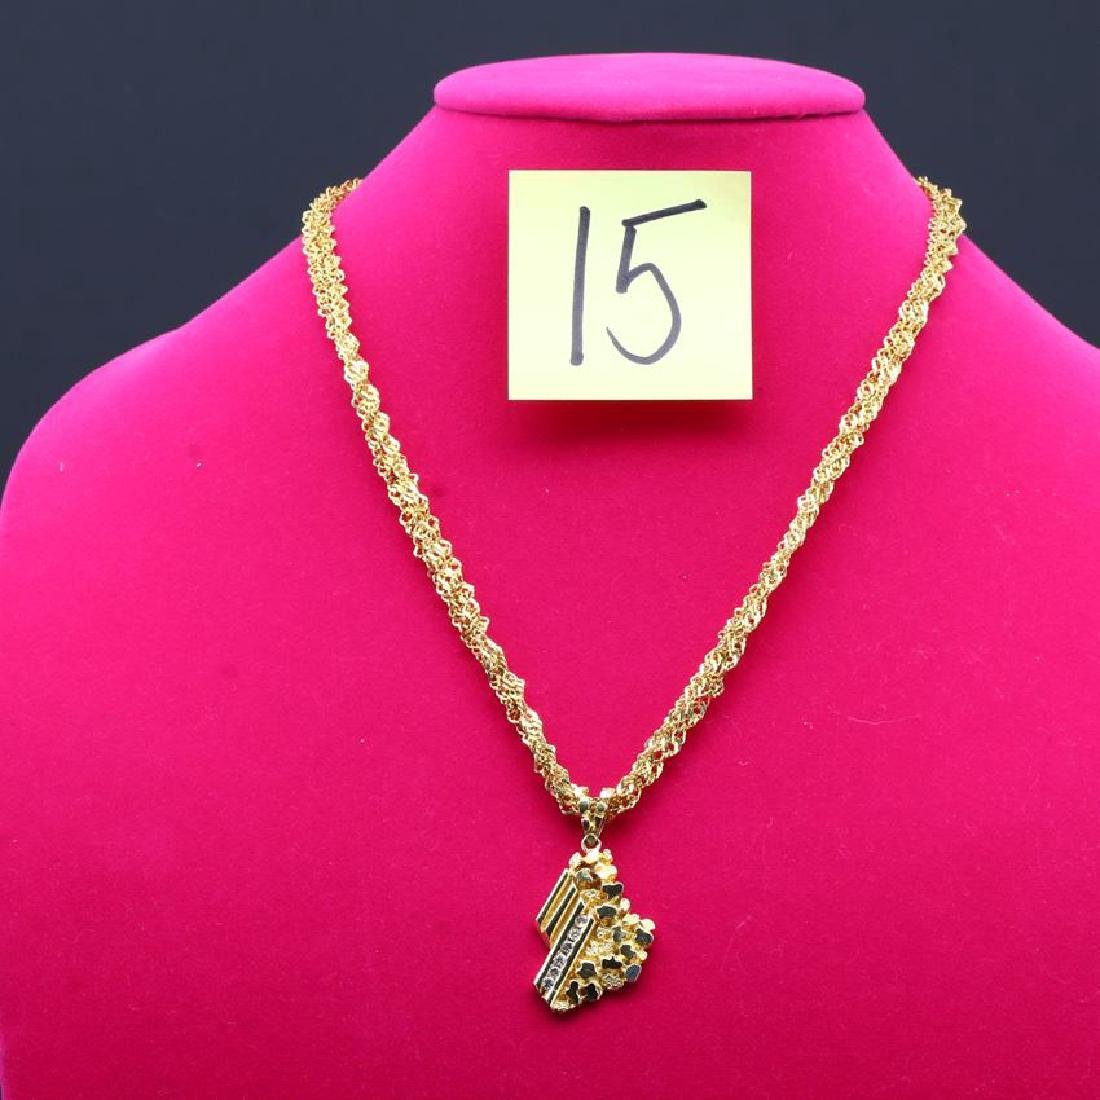 Multistrand 14K Yellow Gold Nugget & Diamond Necklace